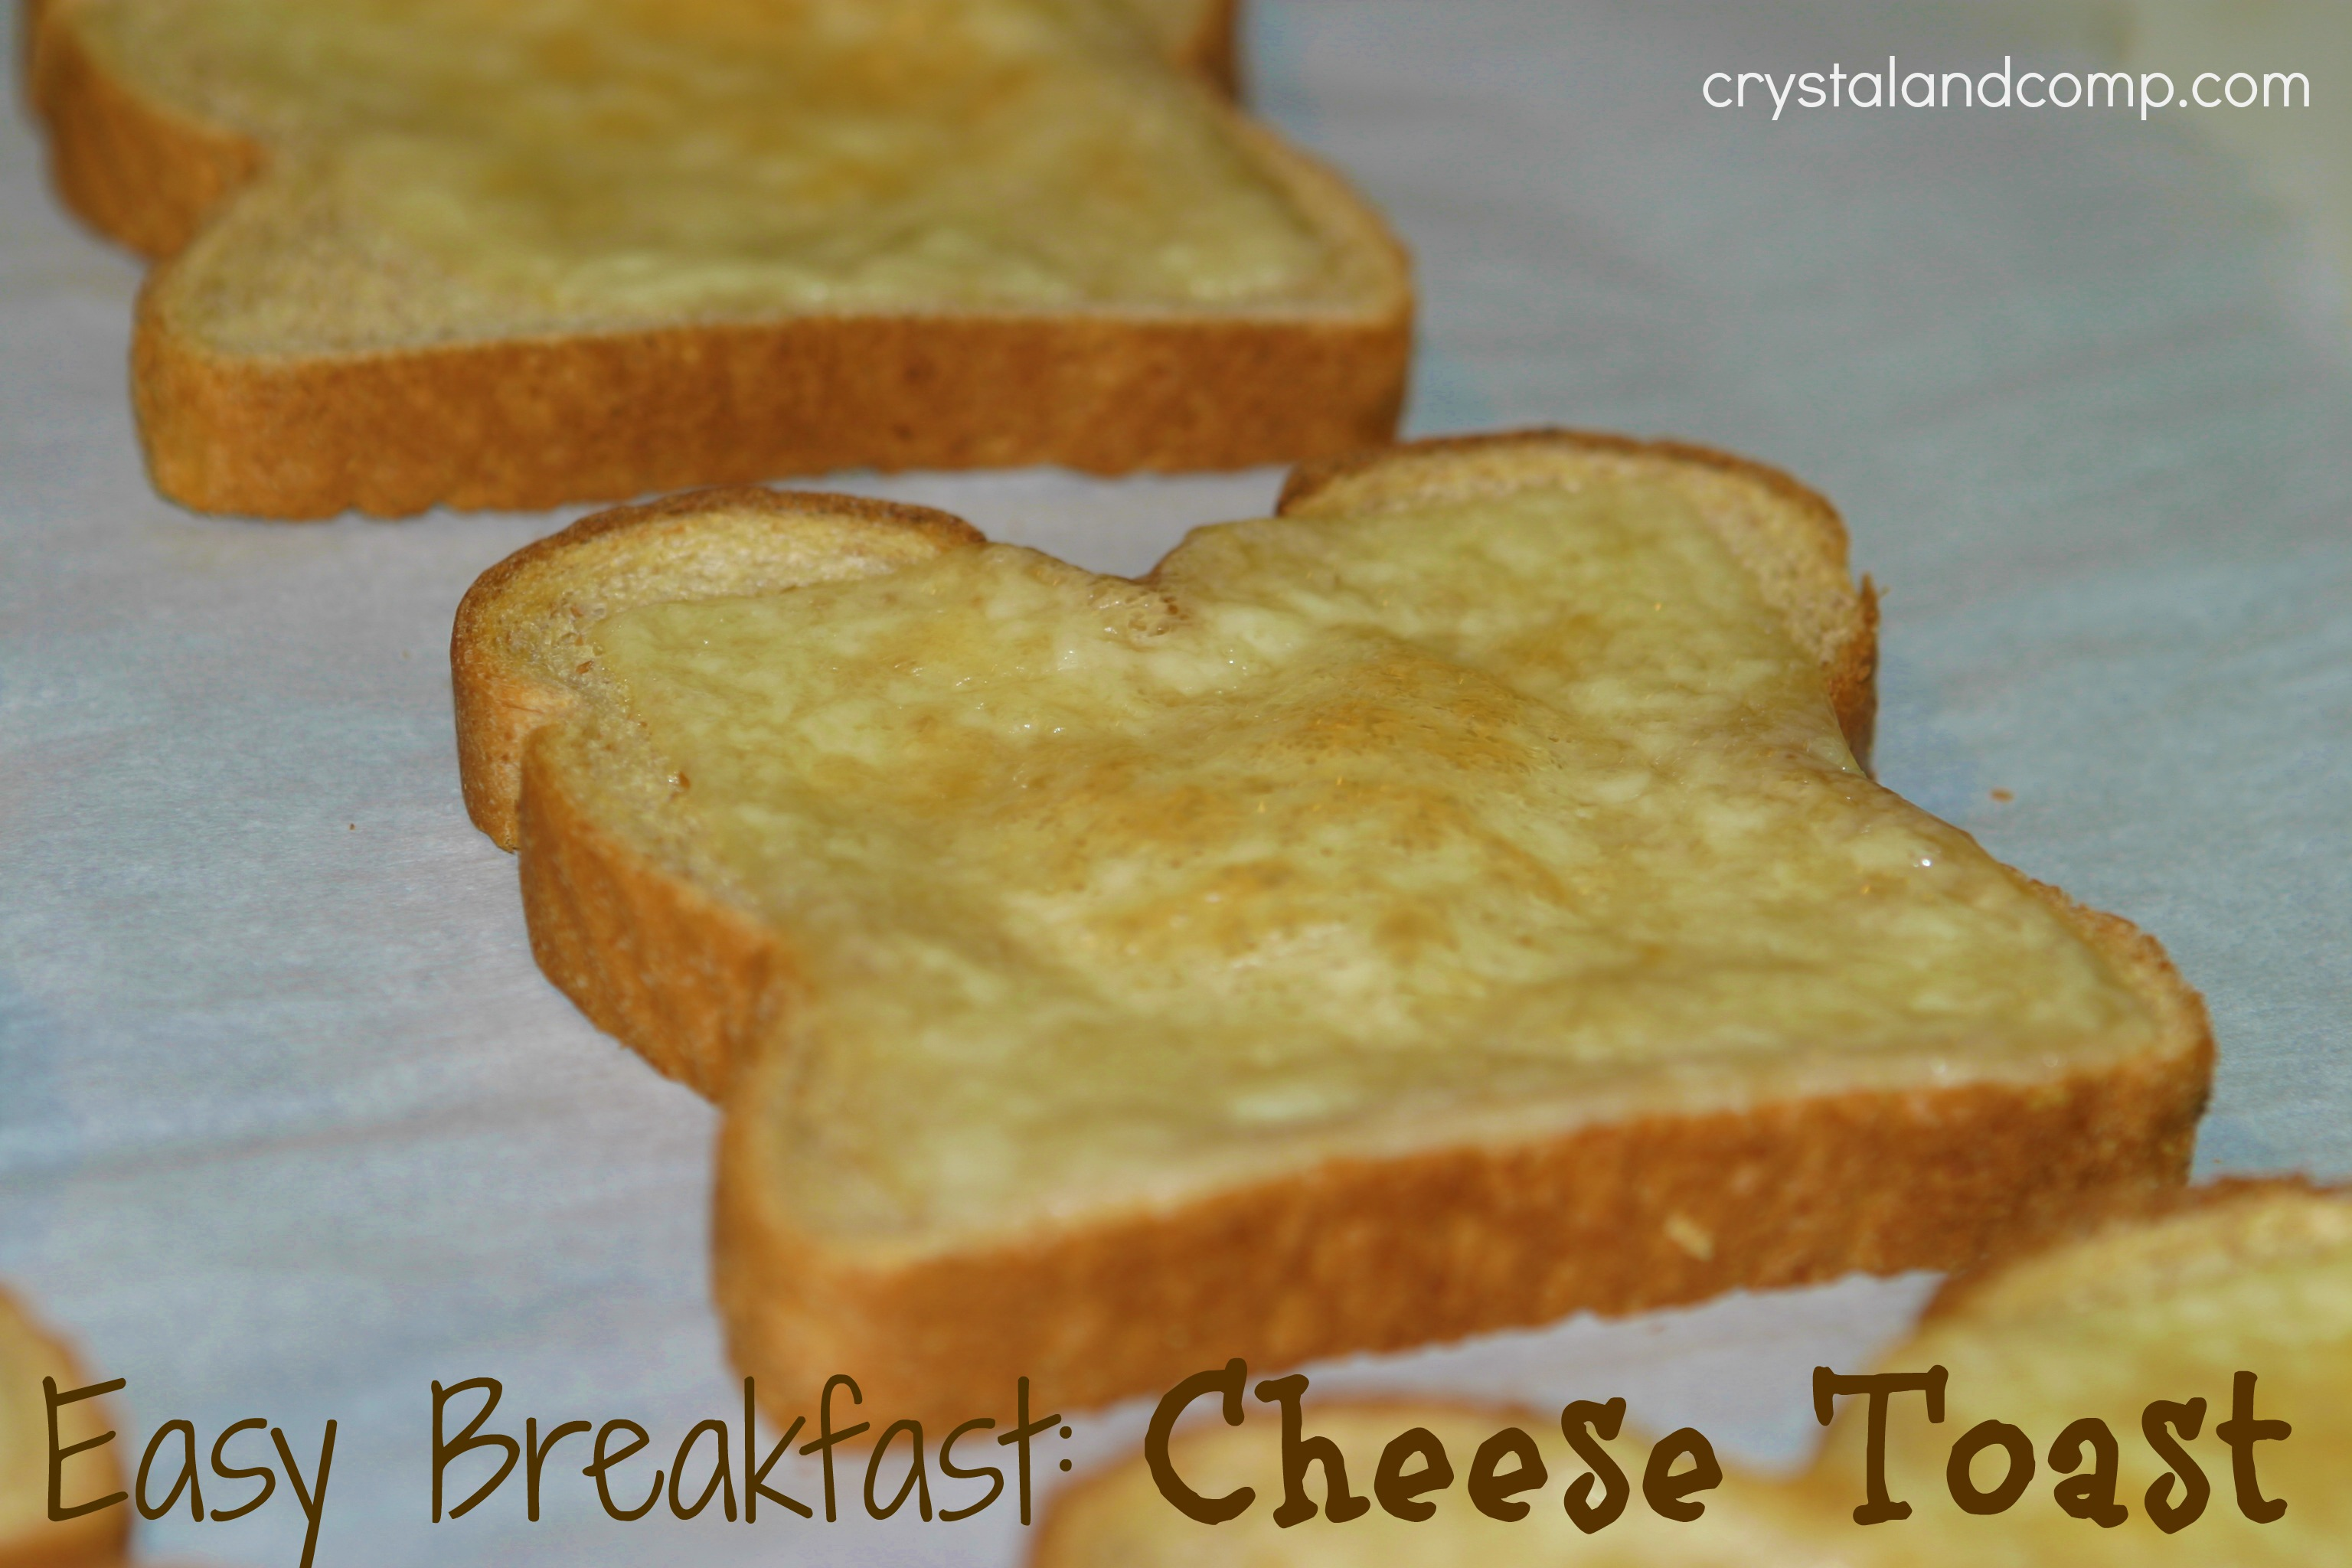 When I was in elementary school, cheese toast was a regular breakfast ...